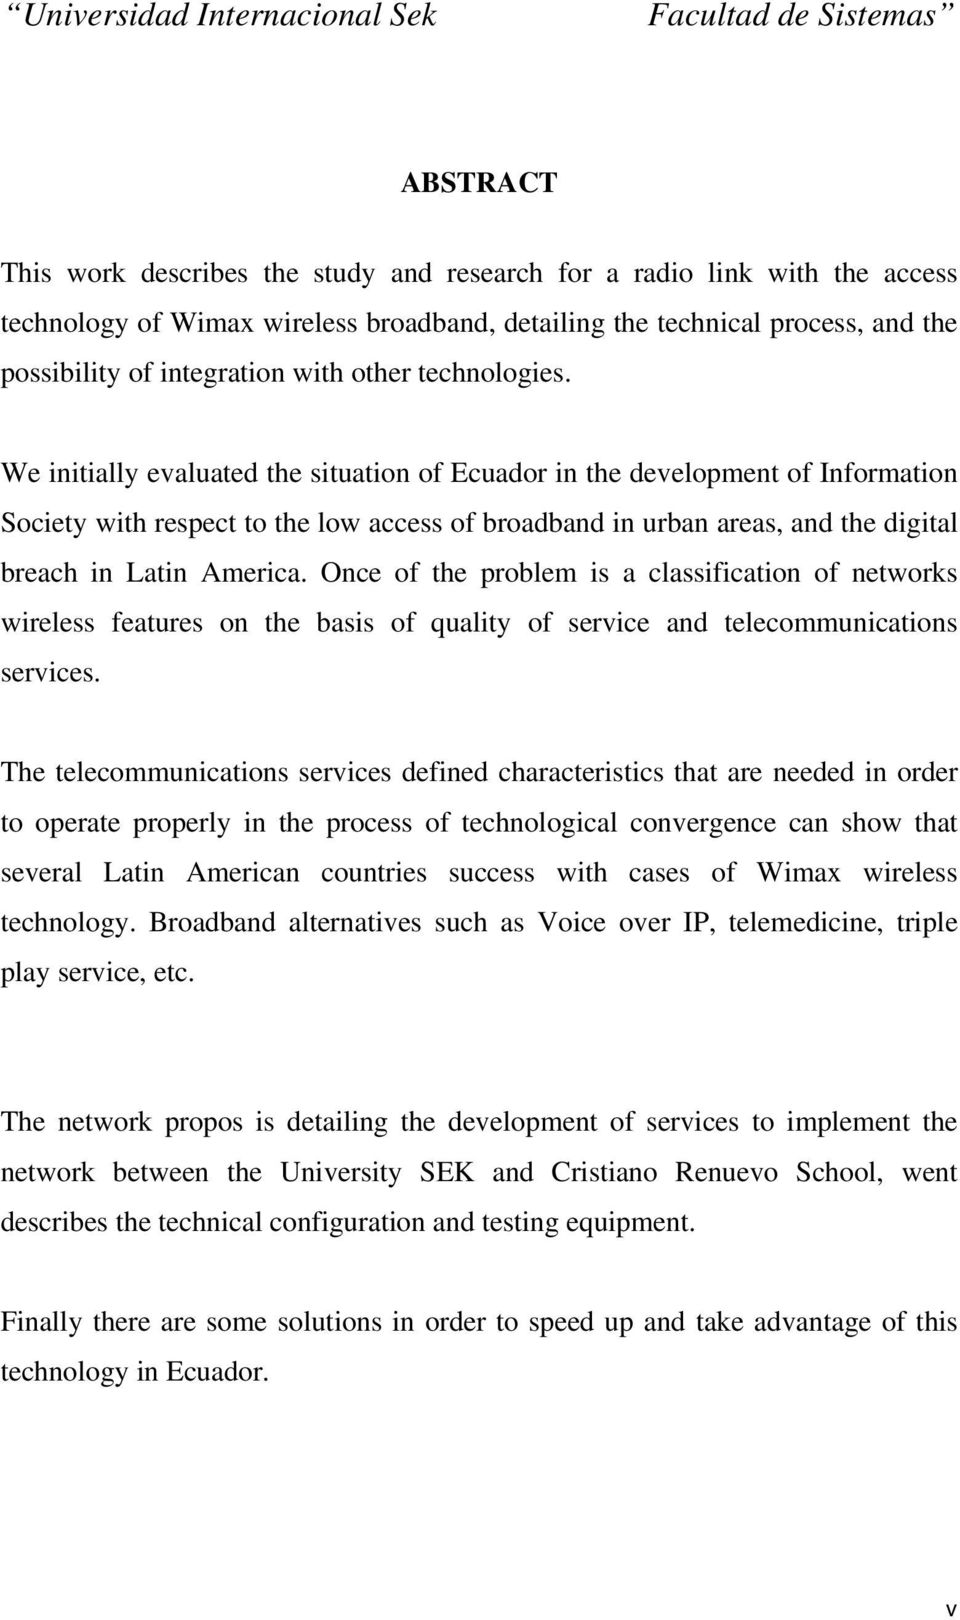 We initially evaluated the situation of Ecuador in the development of Information Society with respect to the low access of broadband in urban areas, and the digital breach in Latin America.